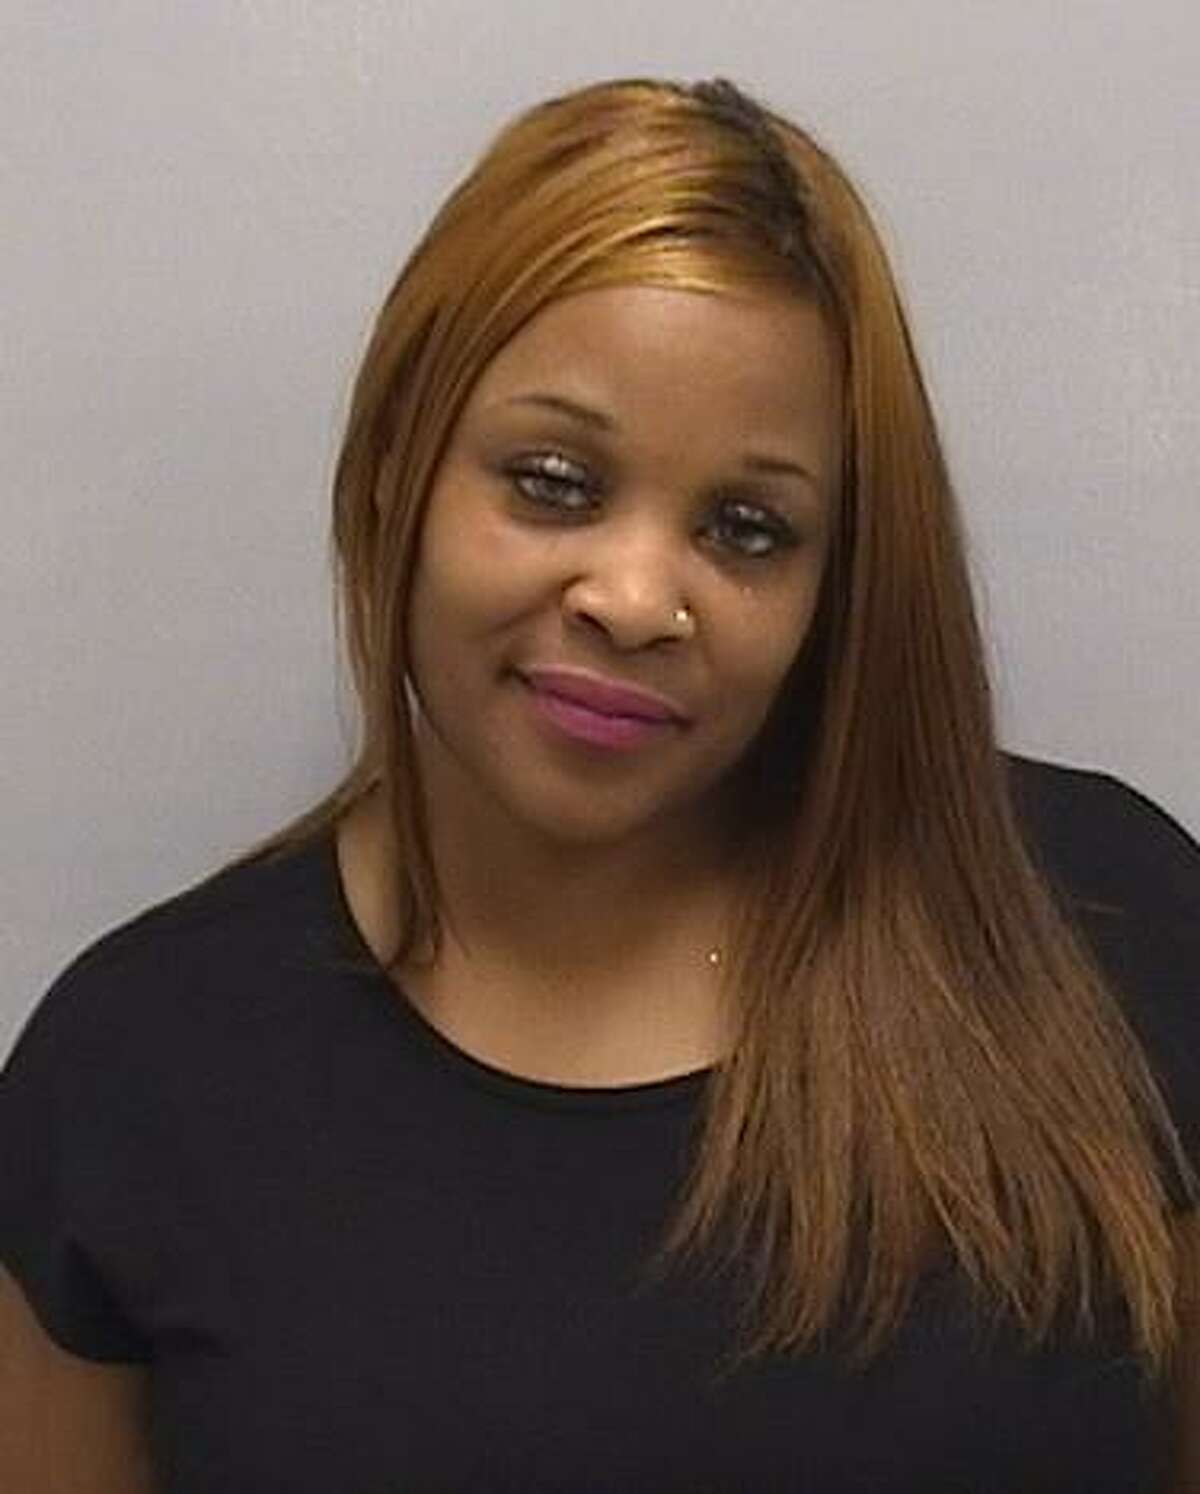 Juanita D. Powell, 36, of New Haven, was arrestedOct. 14, 2019, for allegedly shoplifting at a ShopRite in Orange.